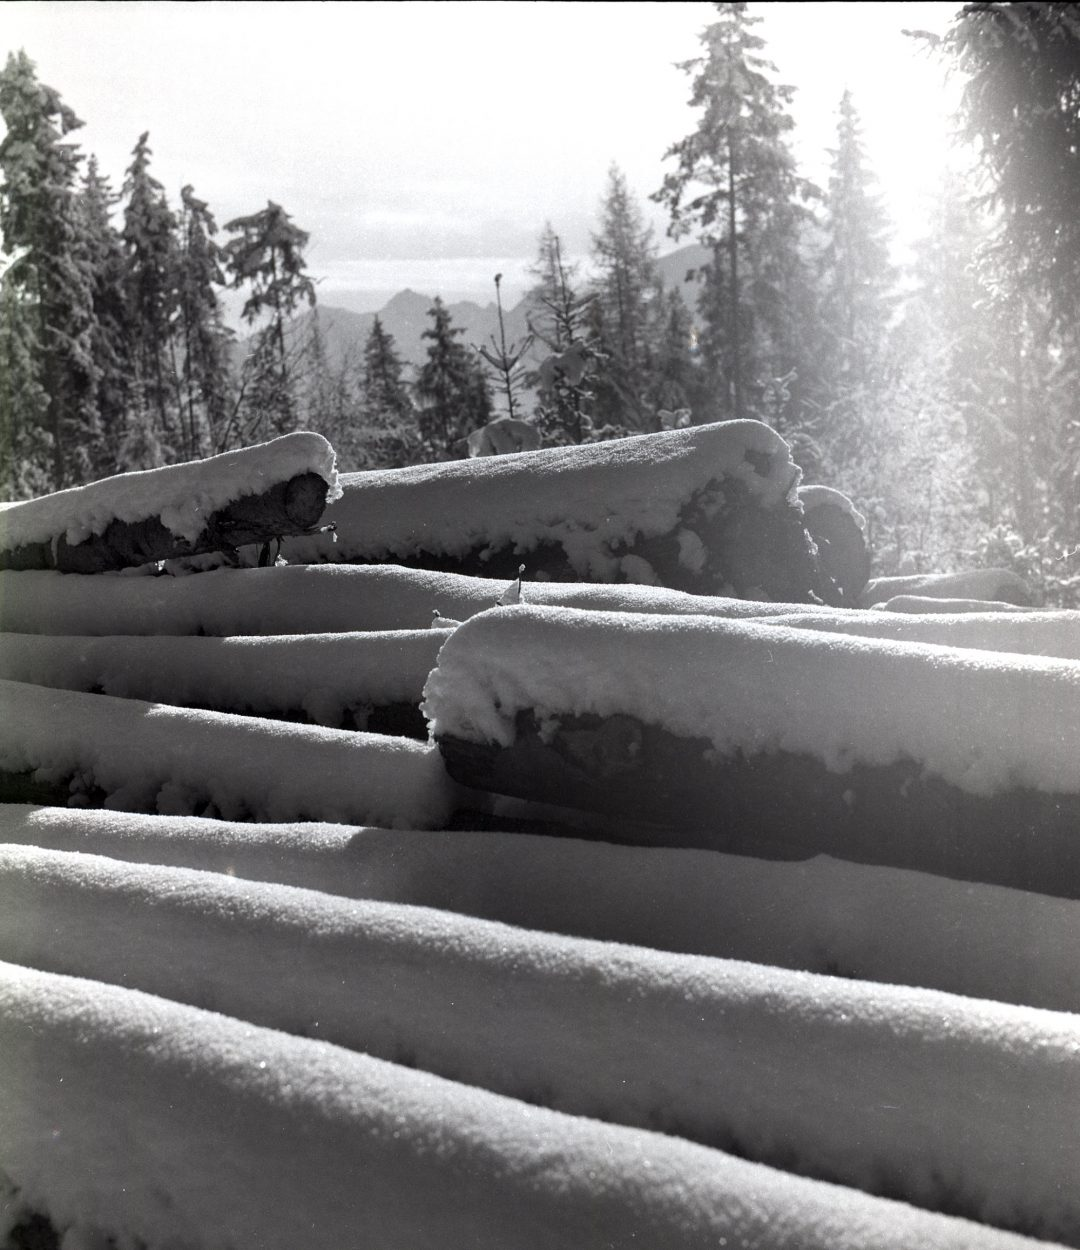 #006 Snow Logs, Ramsau am Dachstein